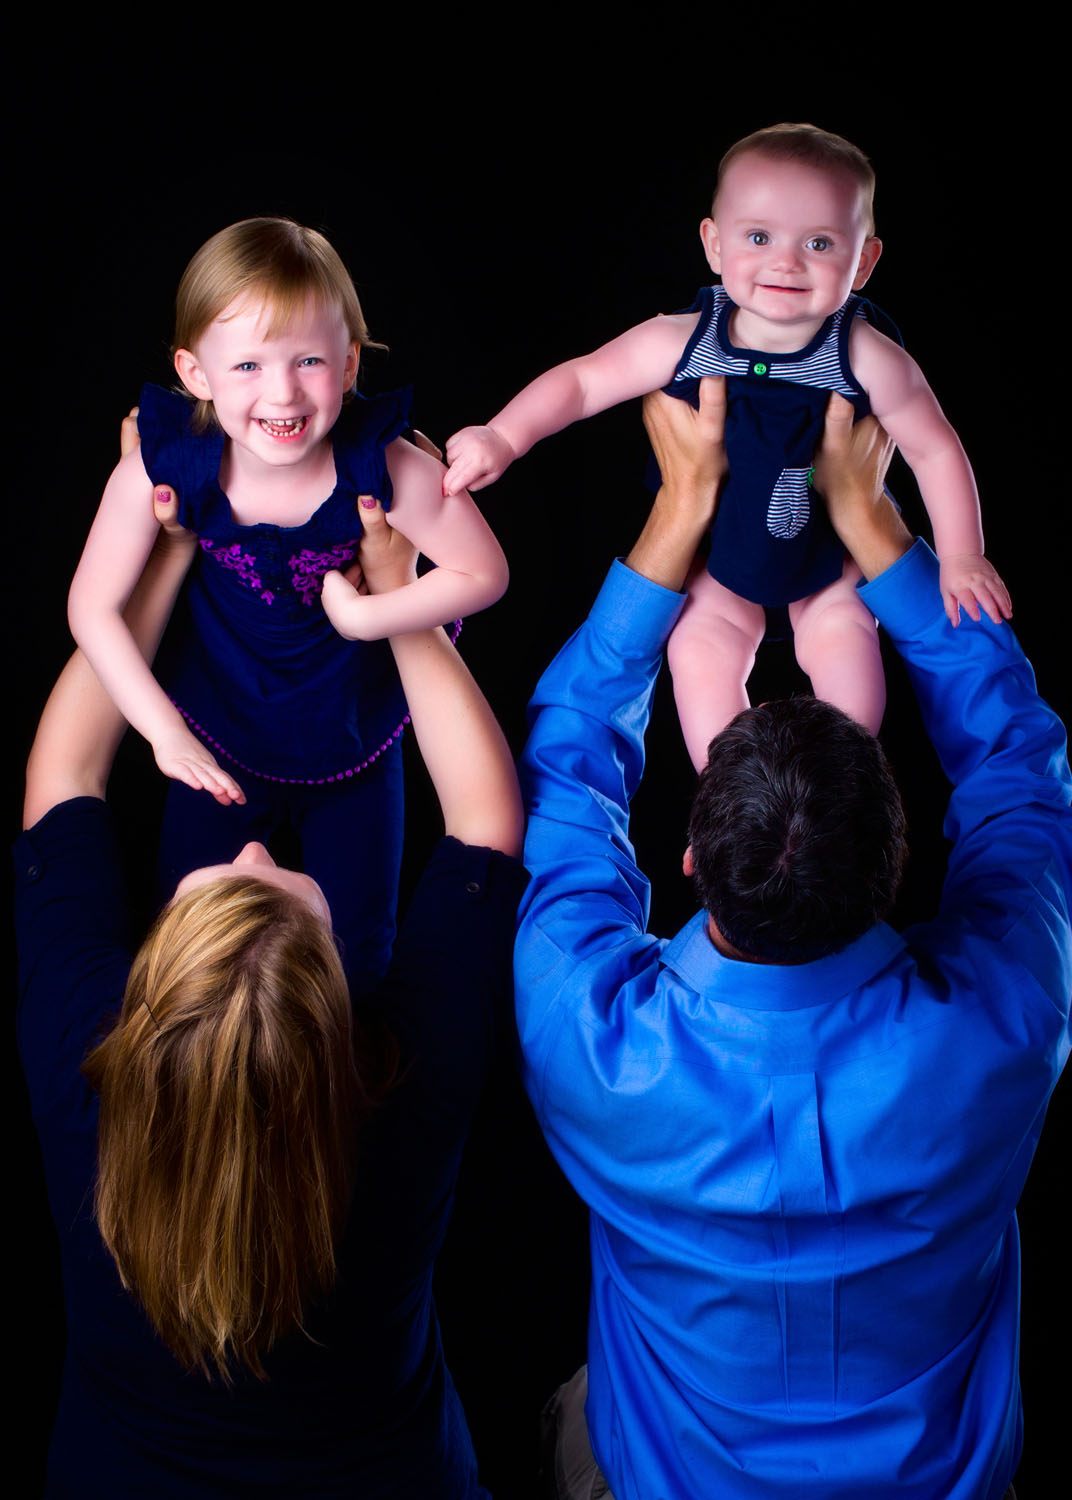 baby and child lifted over head for fun family pictures